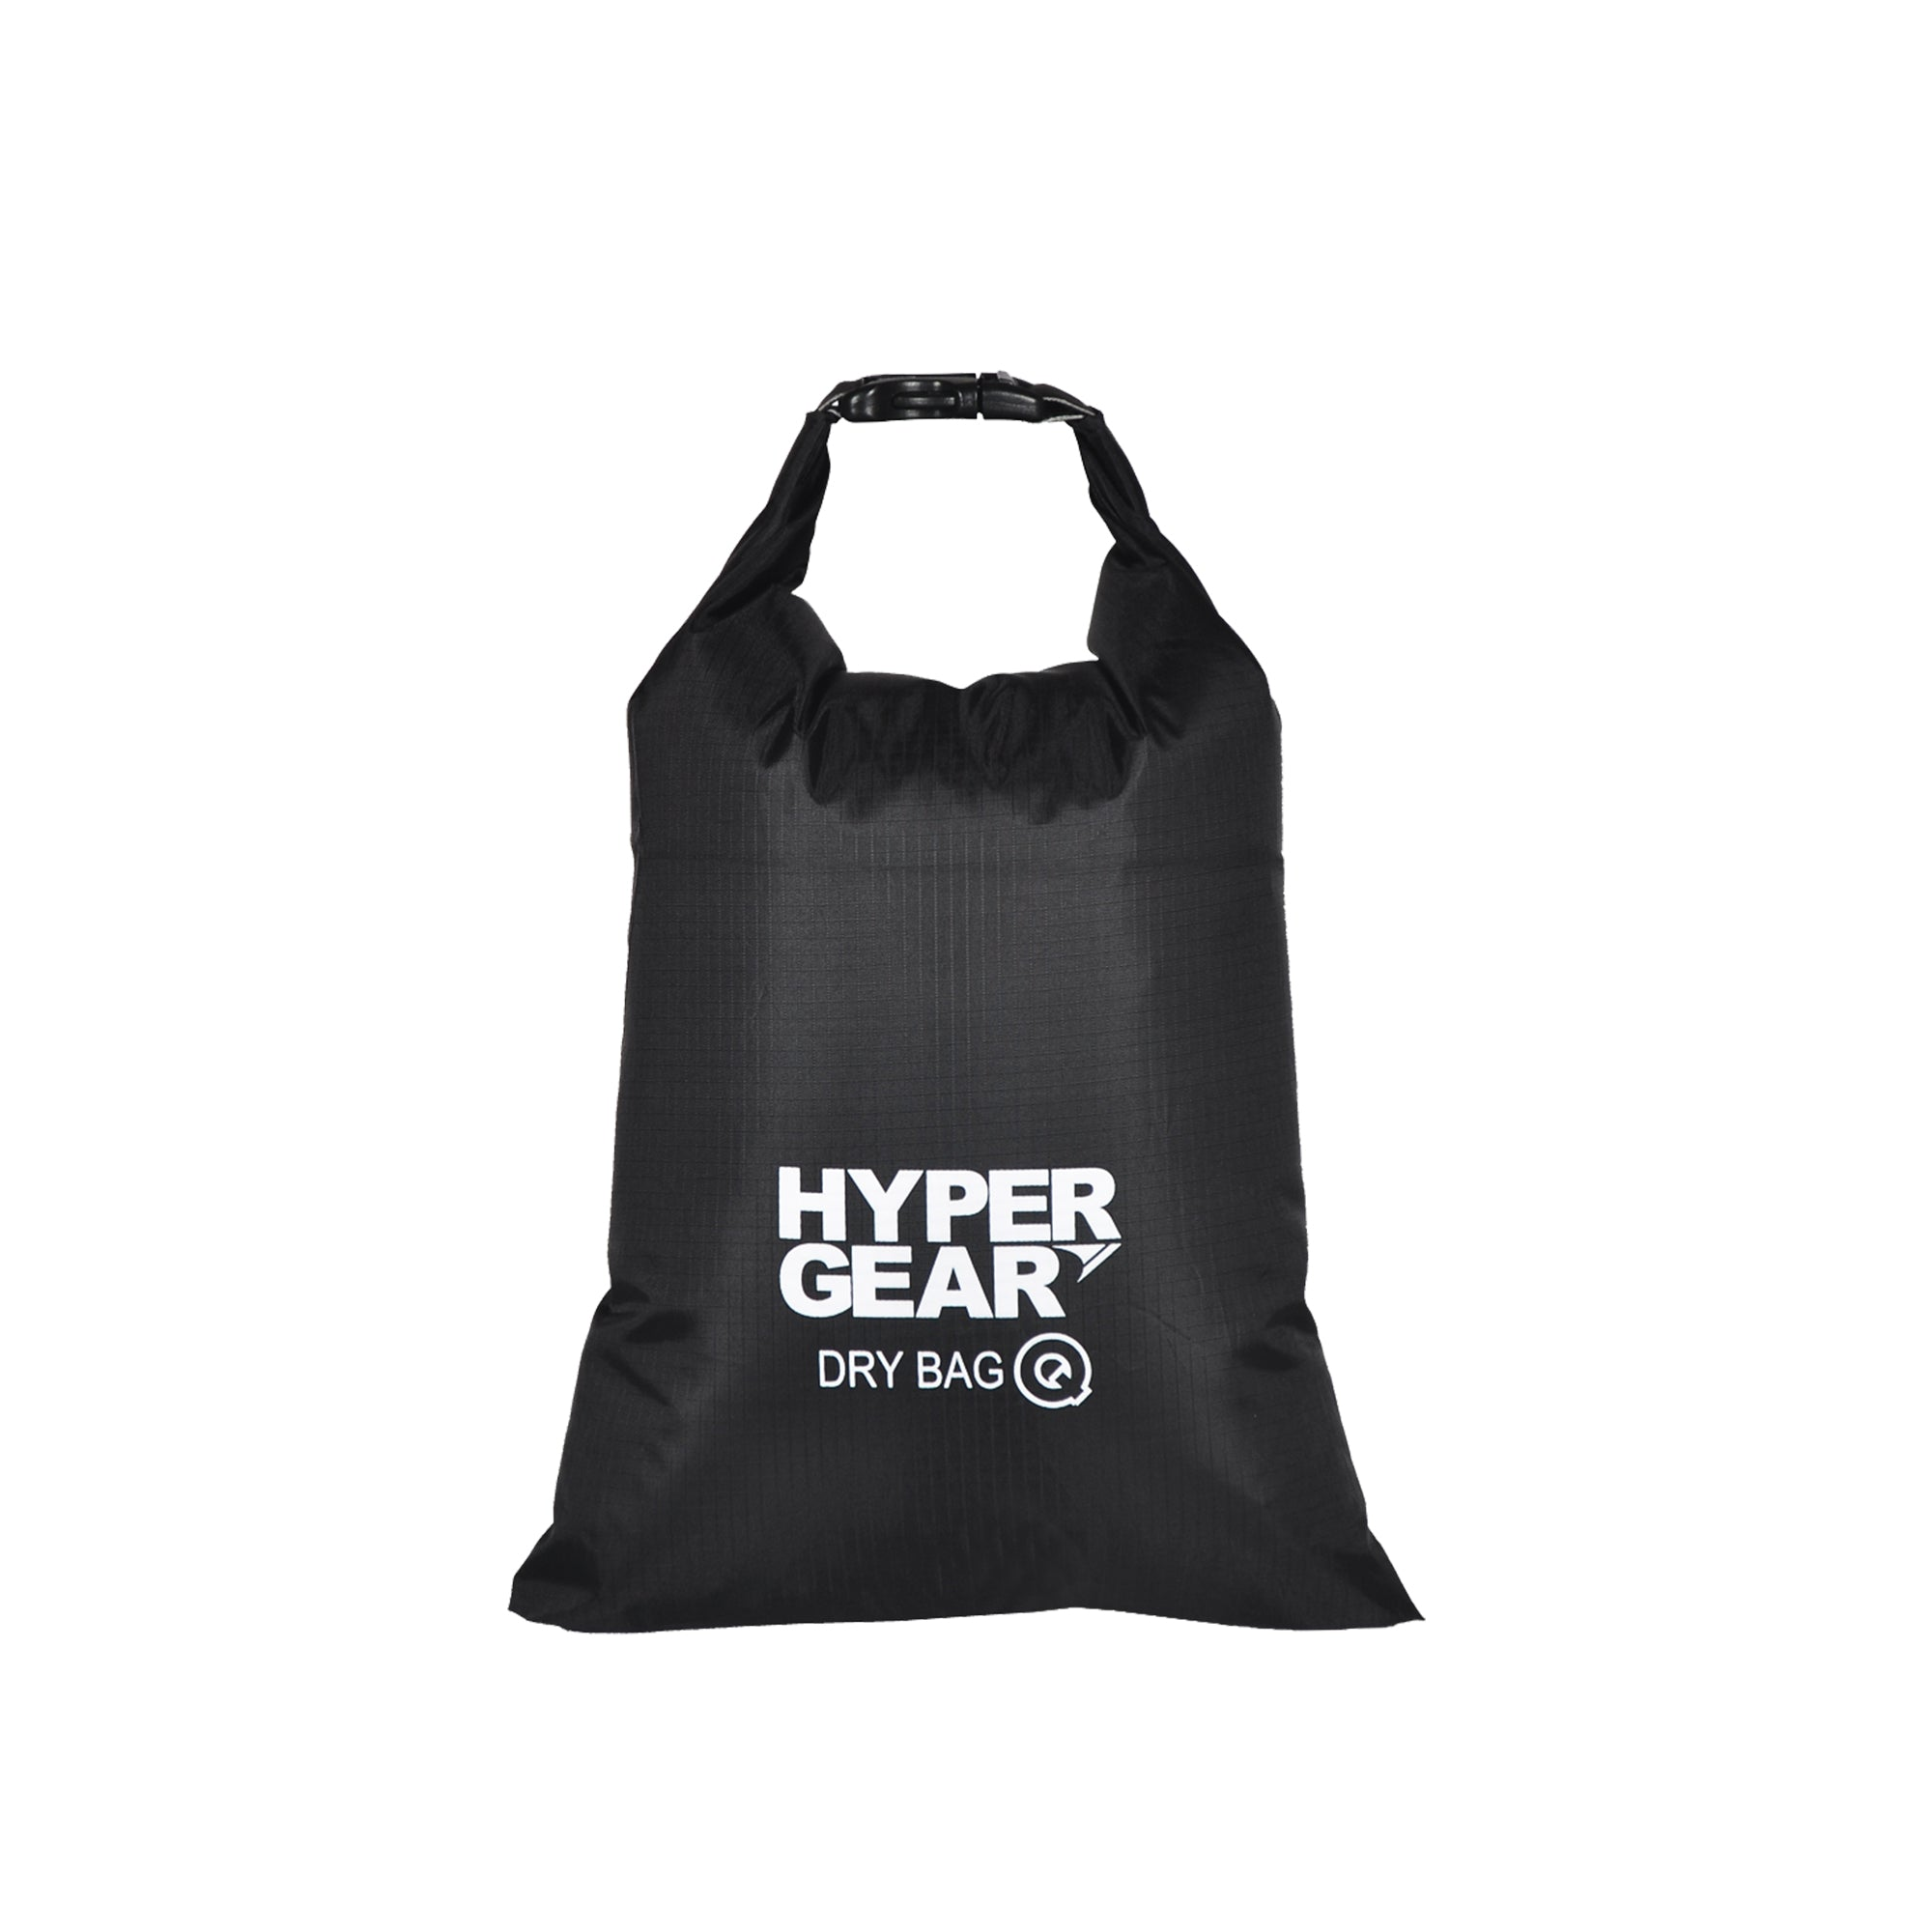 Dry Bag Q 2L Special Deal (Online Exclusive)